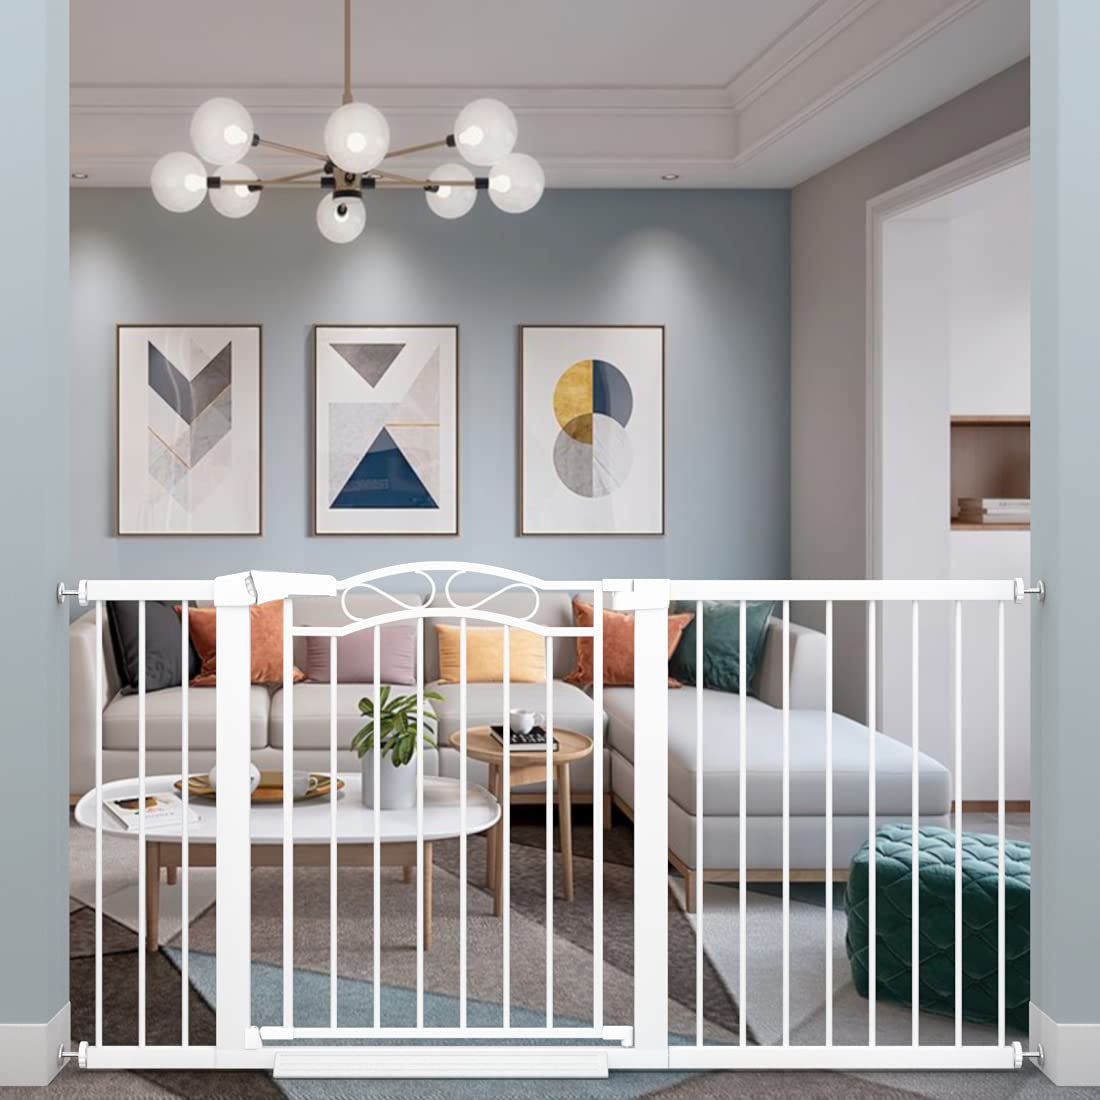 Fairy Baby Extra Wide Baby Gate for Kids Or Pets Walk Thru Dog Gates for The House Doorway Child Safety Gate 59.84